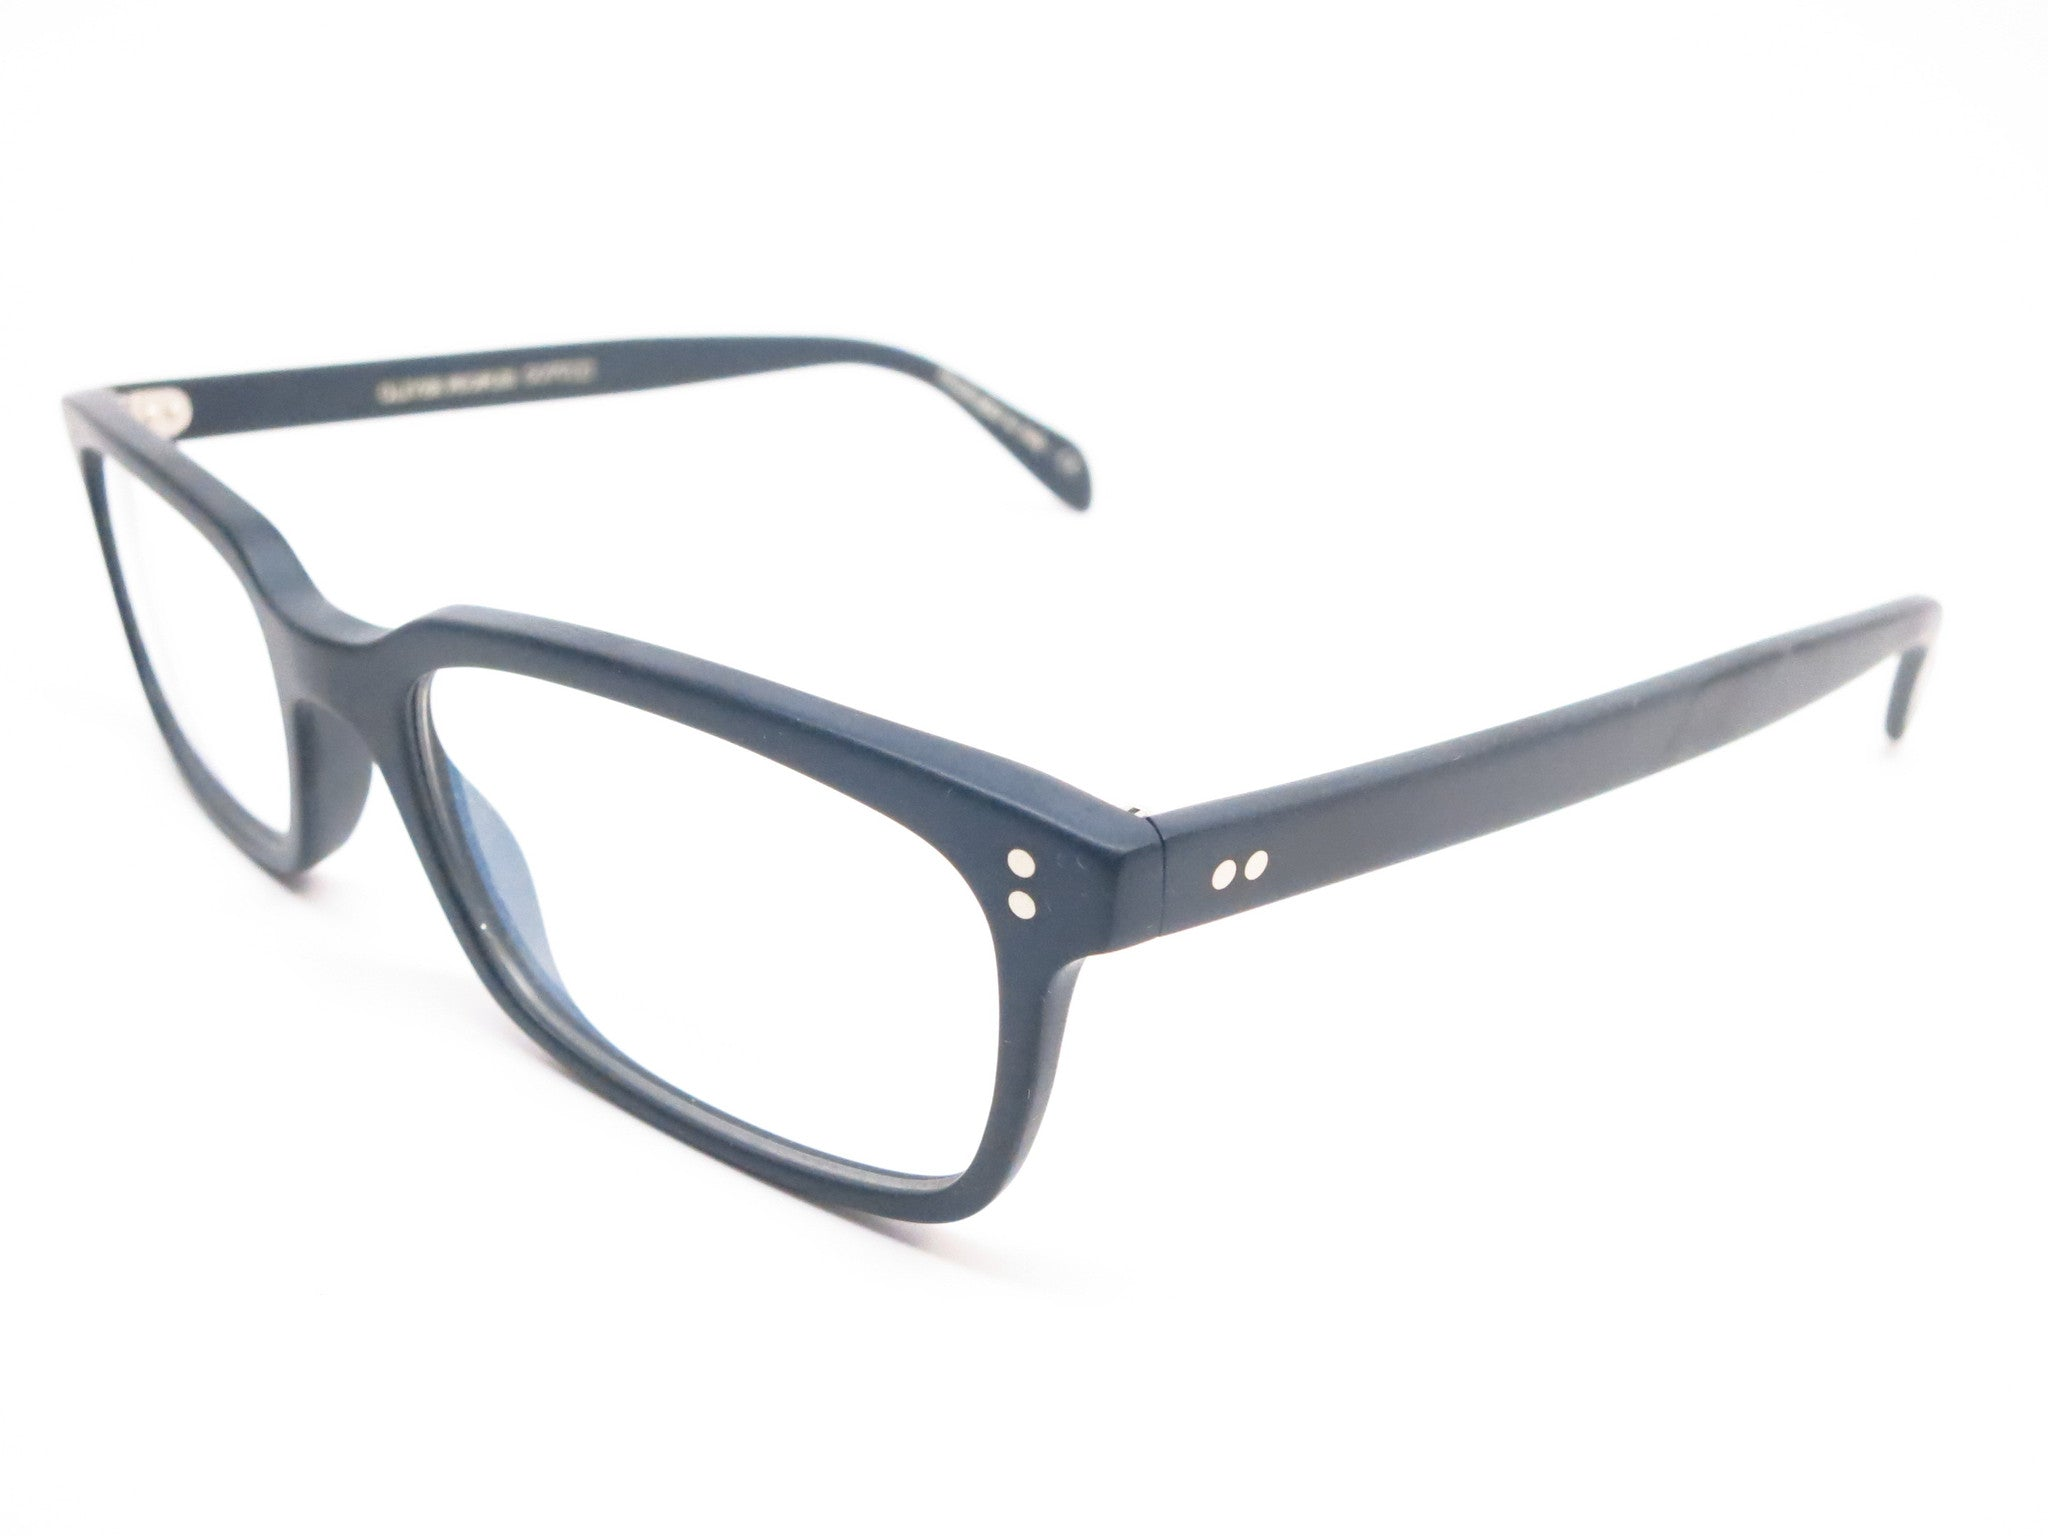 c8da4810f3 Oliver Peoples Denison OV 5102 1031 Matte Black Eyeglasses - Eye Heart  Shades - Oliver Peoples ...